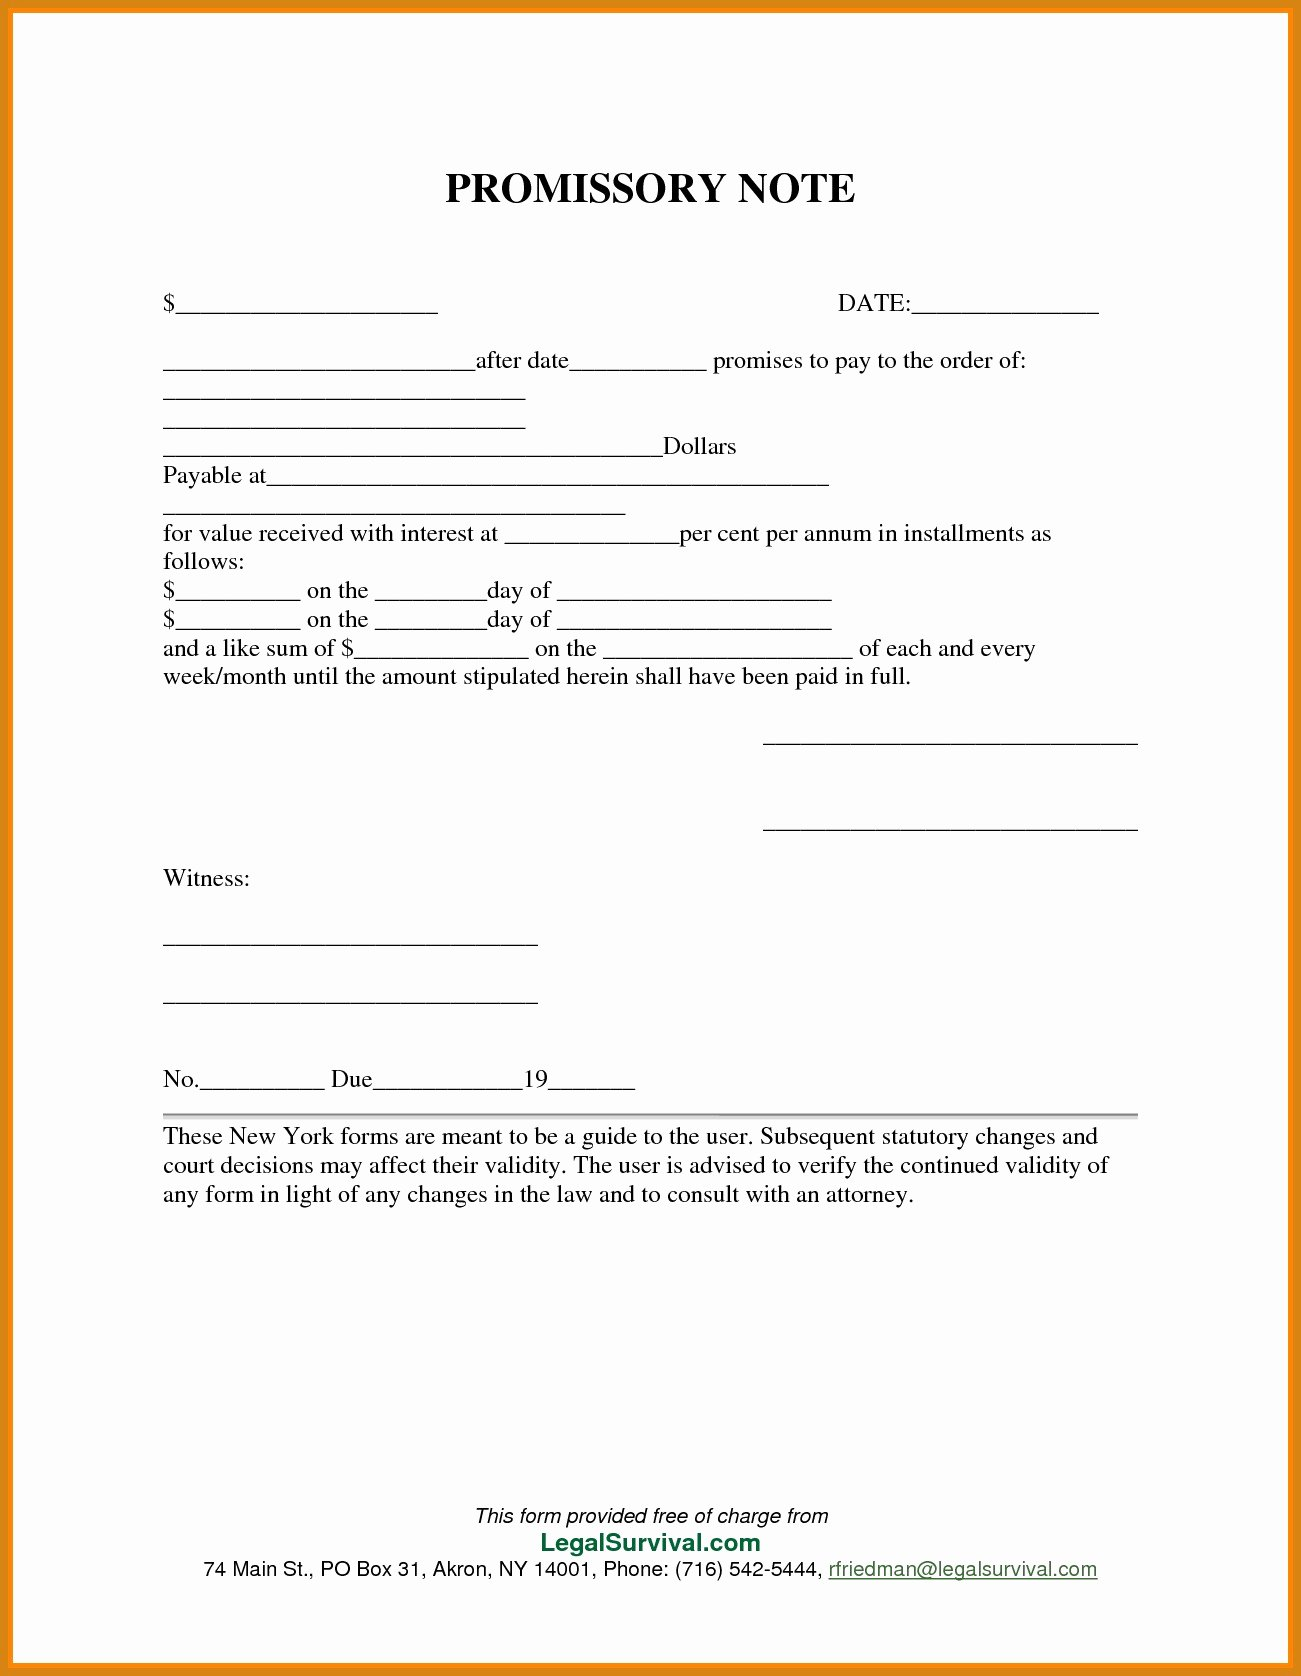 Personal Loan forms Template Beautiful Free Promissory Note Template Pdf Free Download